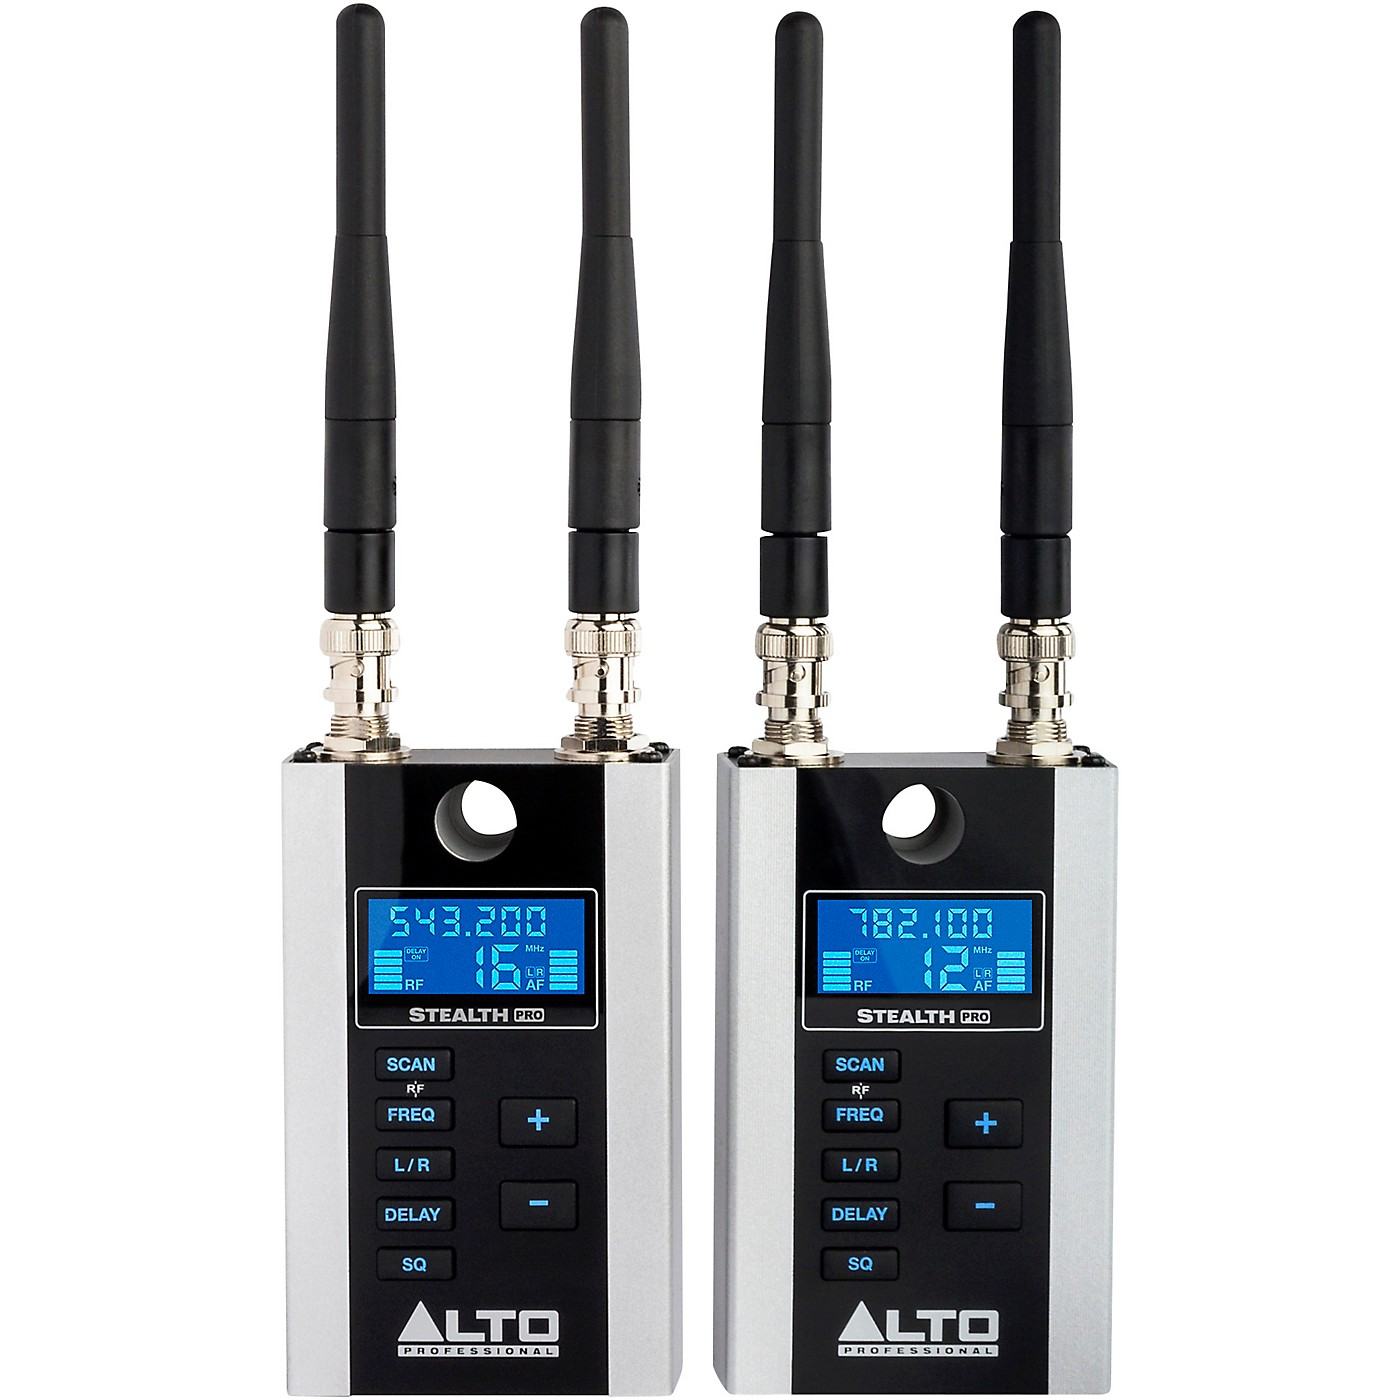 Alto Stealth Wireless Pro Expander Pack thumbnail